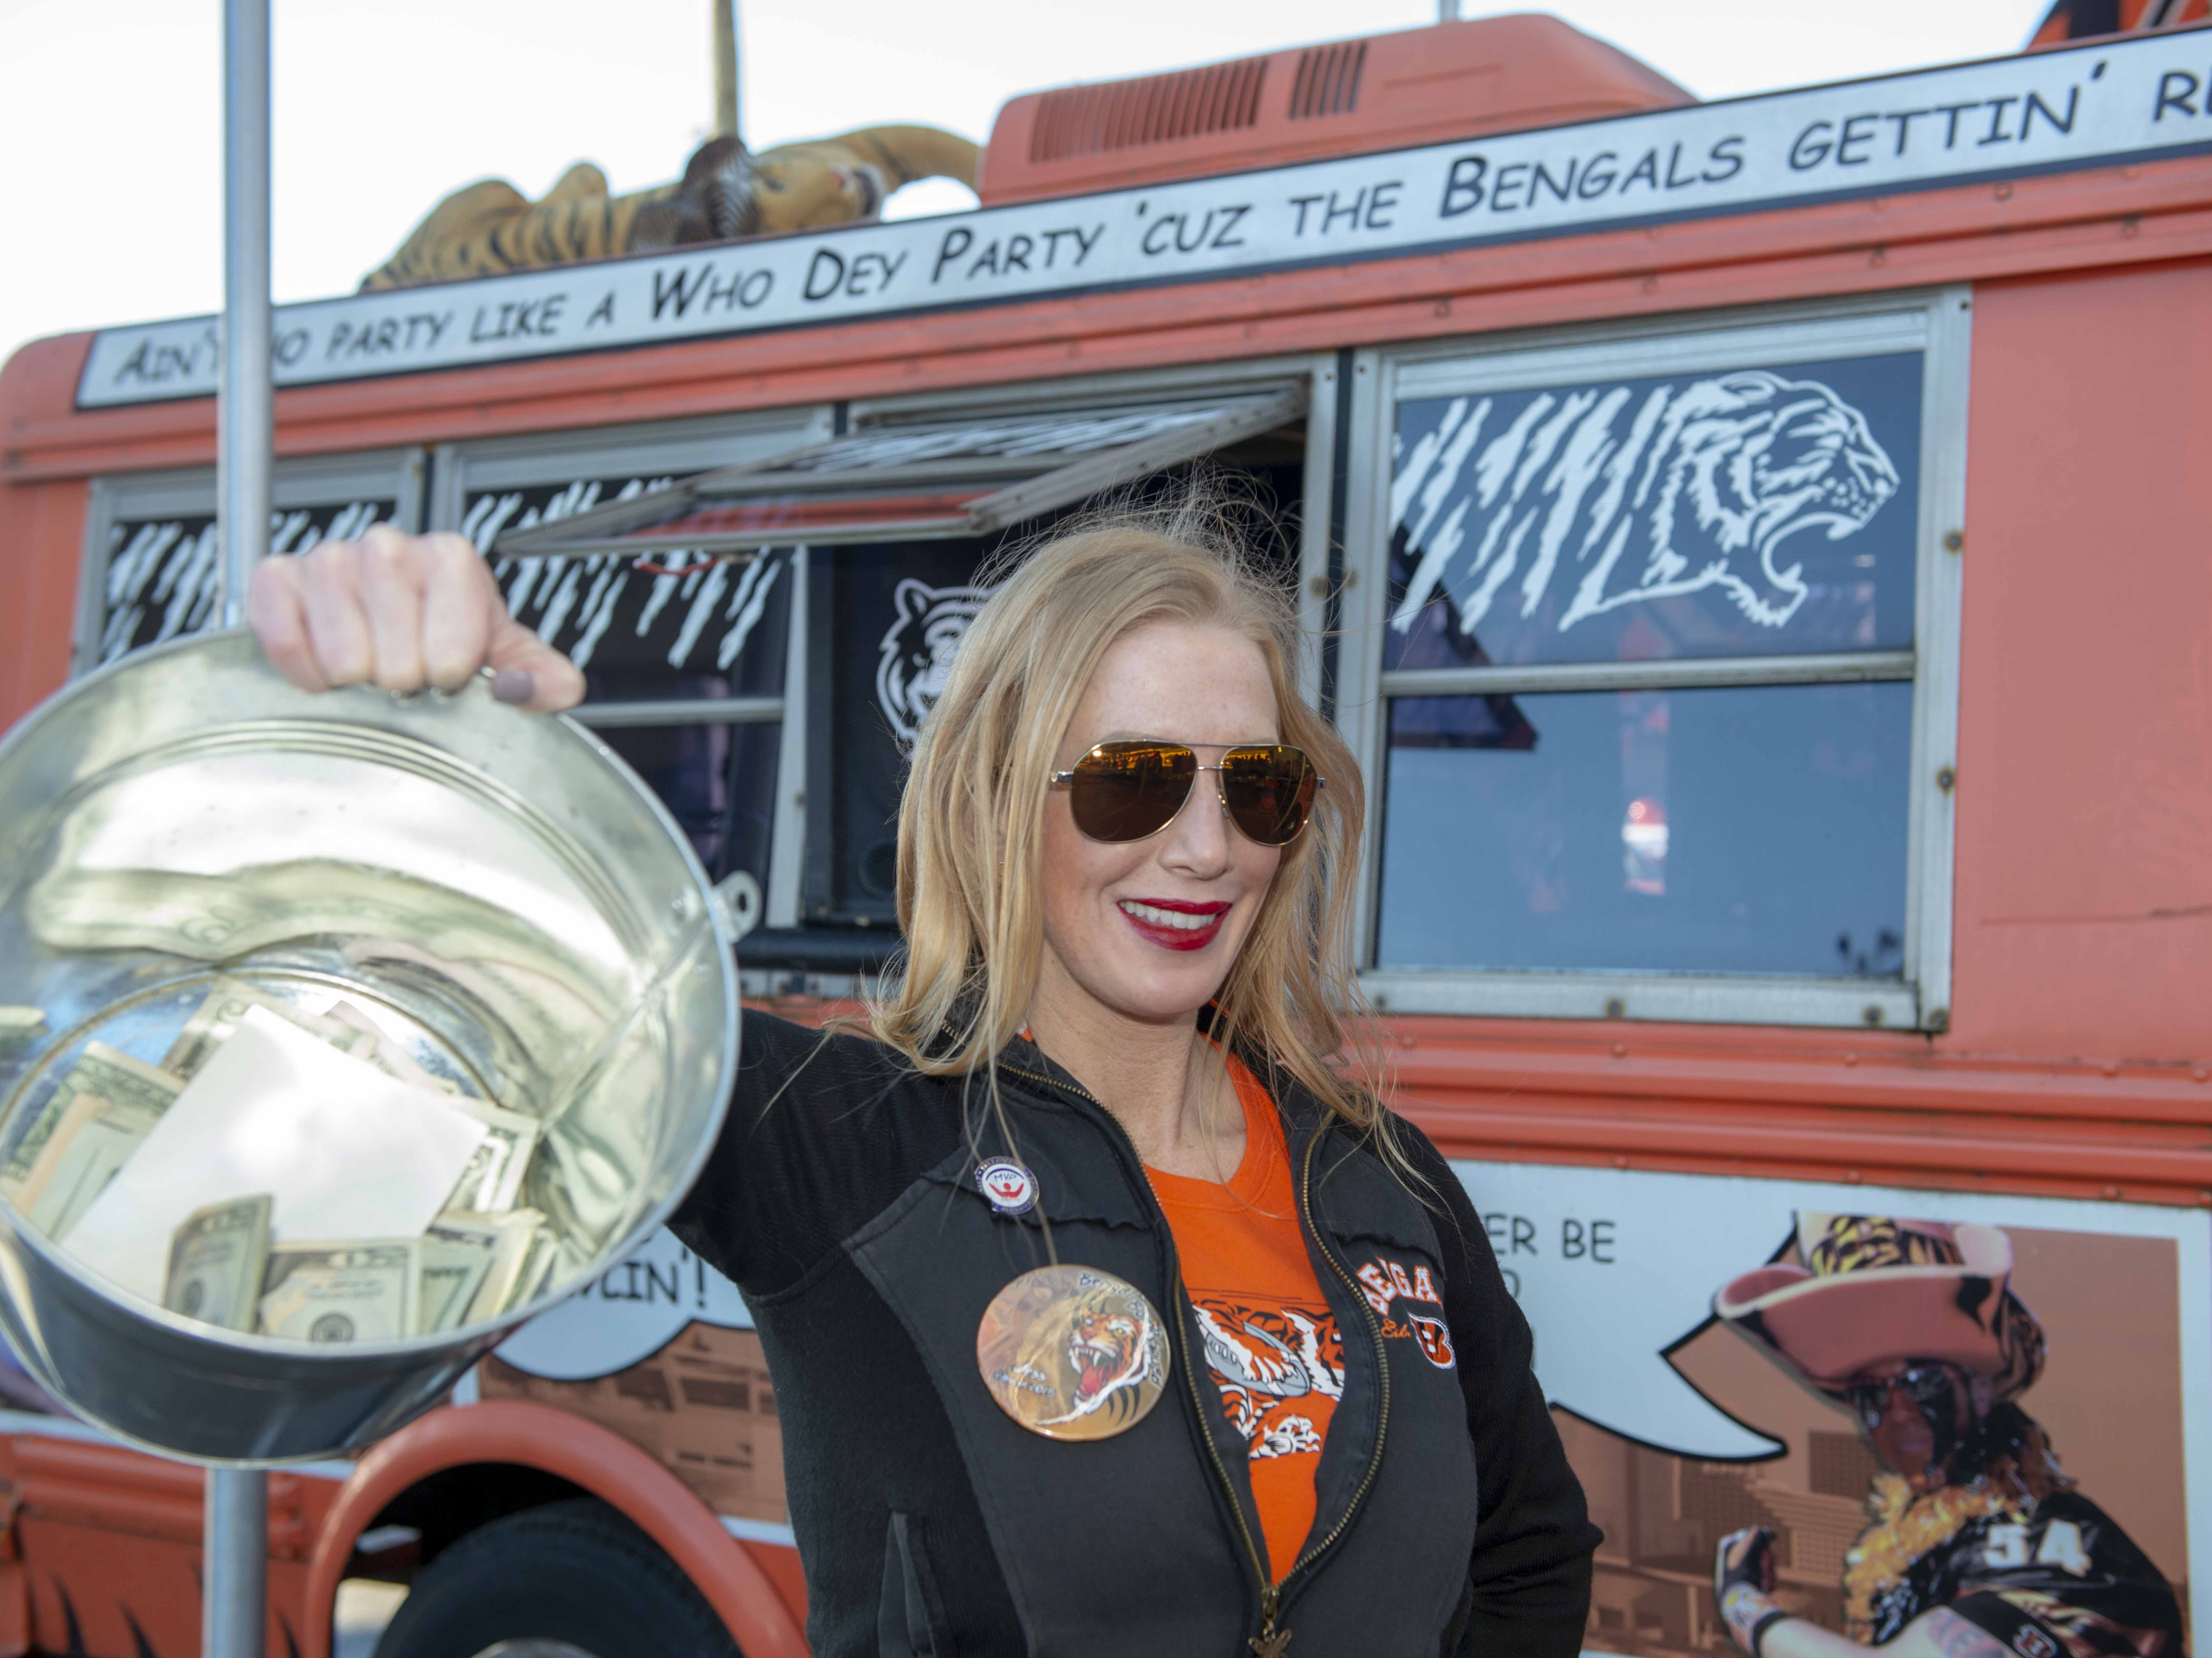 Cincinnati Bengals fans showed up for tailgating parties as the Cincinnati Bengals hosted the Denver Broncos at Paul Brown Stadium Sunday, December 2, 2018. Jess Conley holds up her bucket of money collected for the Maskvsmohawk.com charity.  The winner of the Bengals vs. Chargers game will donte the collected money to their favorite charity. If the Bengals win the money will go to the Alzheimers Foundation or if the Broncos win then the money will go to the Lupus Foundation.